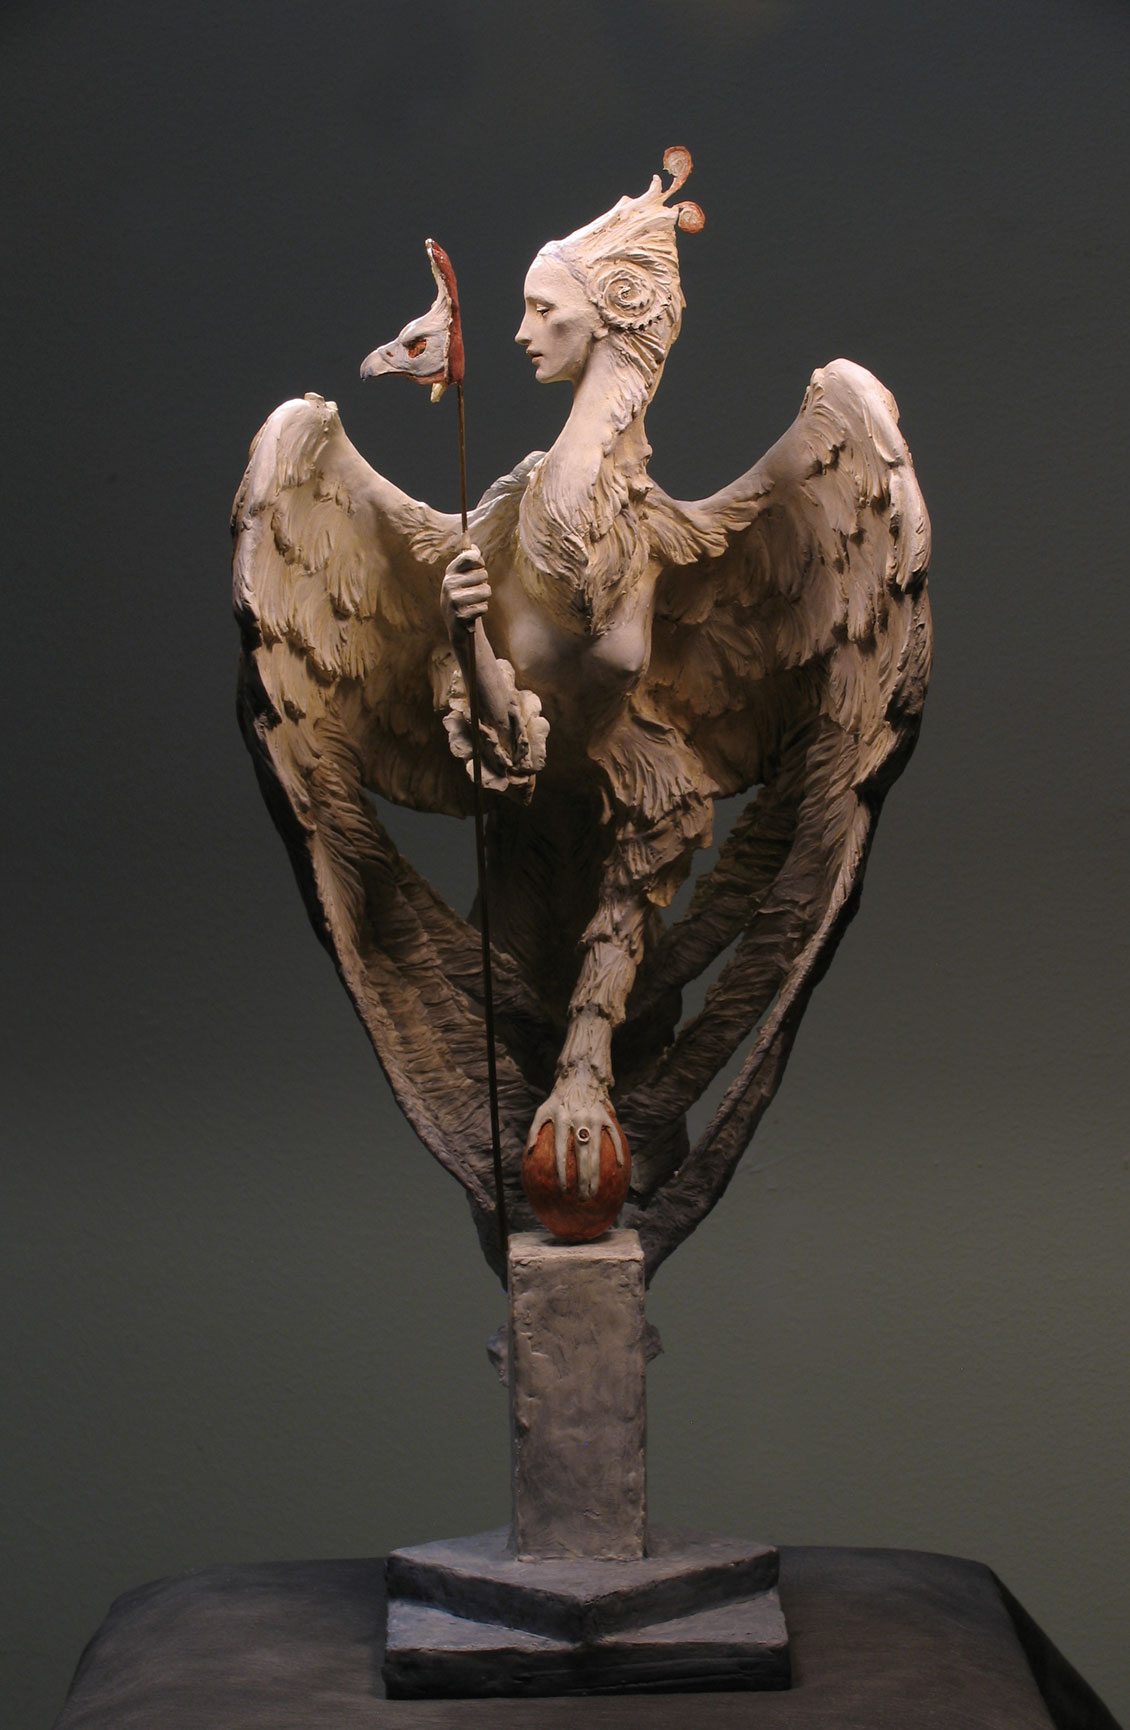 Venetian Harpy, 11 x 22 inches, in mixed media, completed 2014.